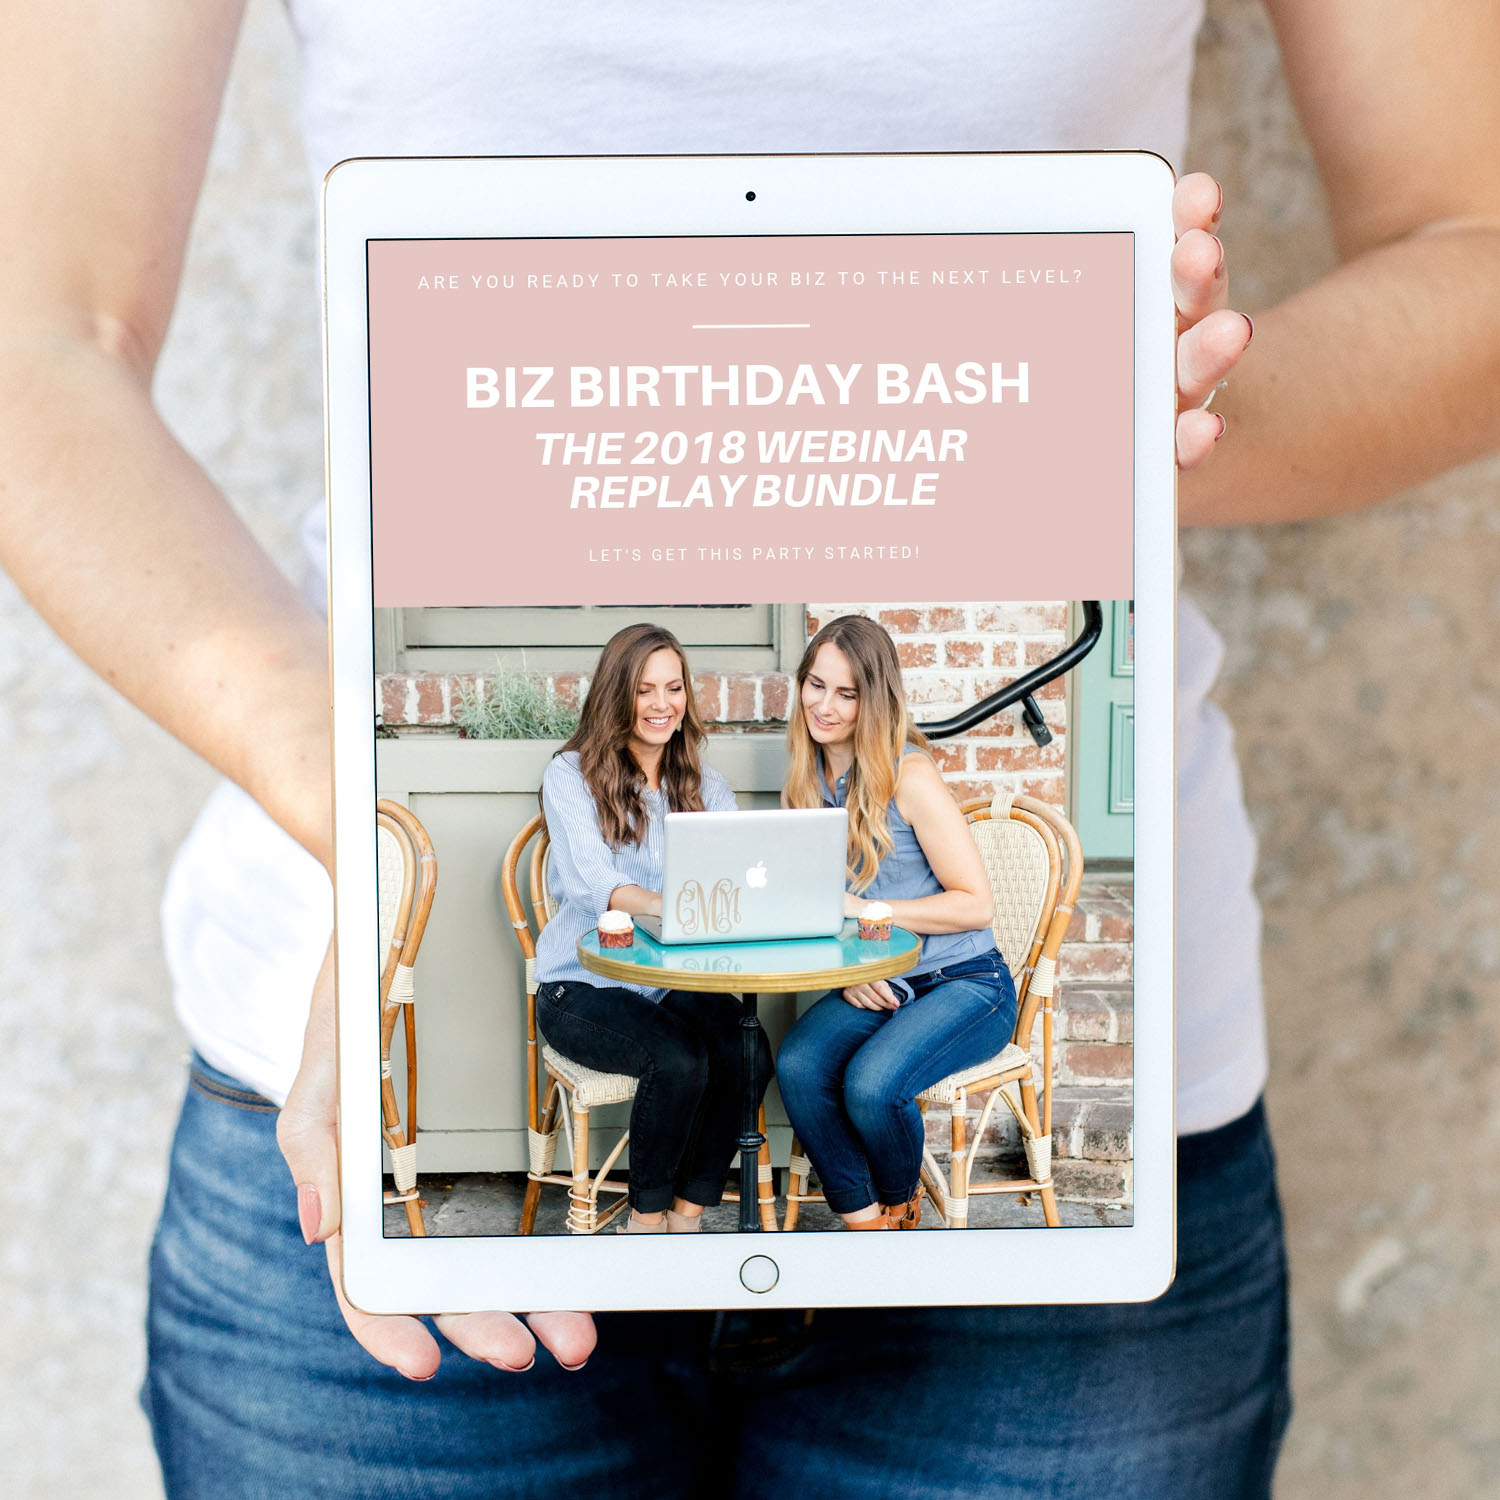 2018 BIZ BIRTHDAY BASH REPLAY BUNDLE - Is your friend or family member interested in learning how to start their own creative business and scale it to go full-time and make a profit! This is the PERFECT gift for them. The bundle includes three videos, and multiple PDF downloads that will help them get started on their creative biz journey. OR if they already have a creative business it will help them strengthen their biz!